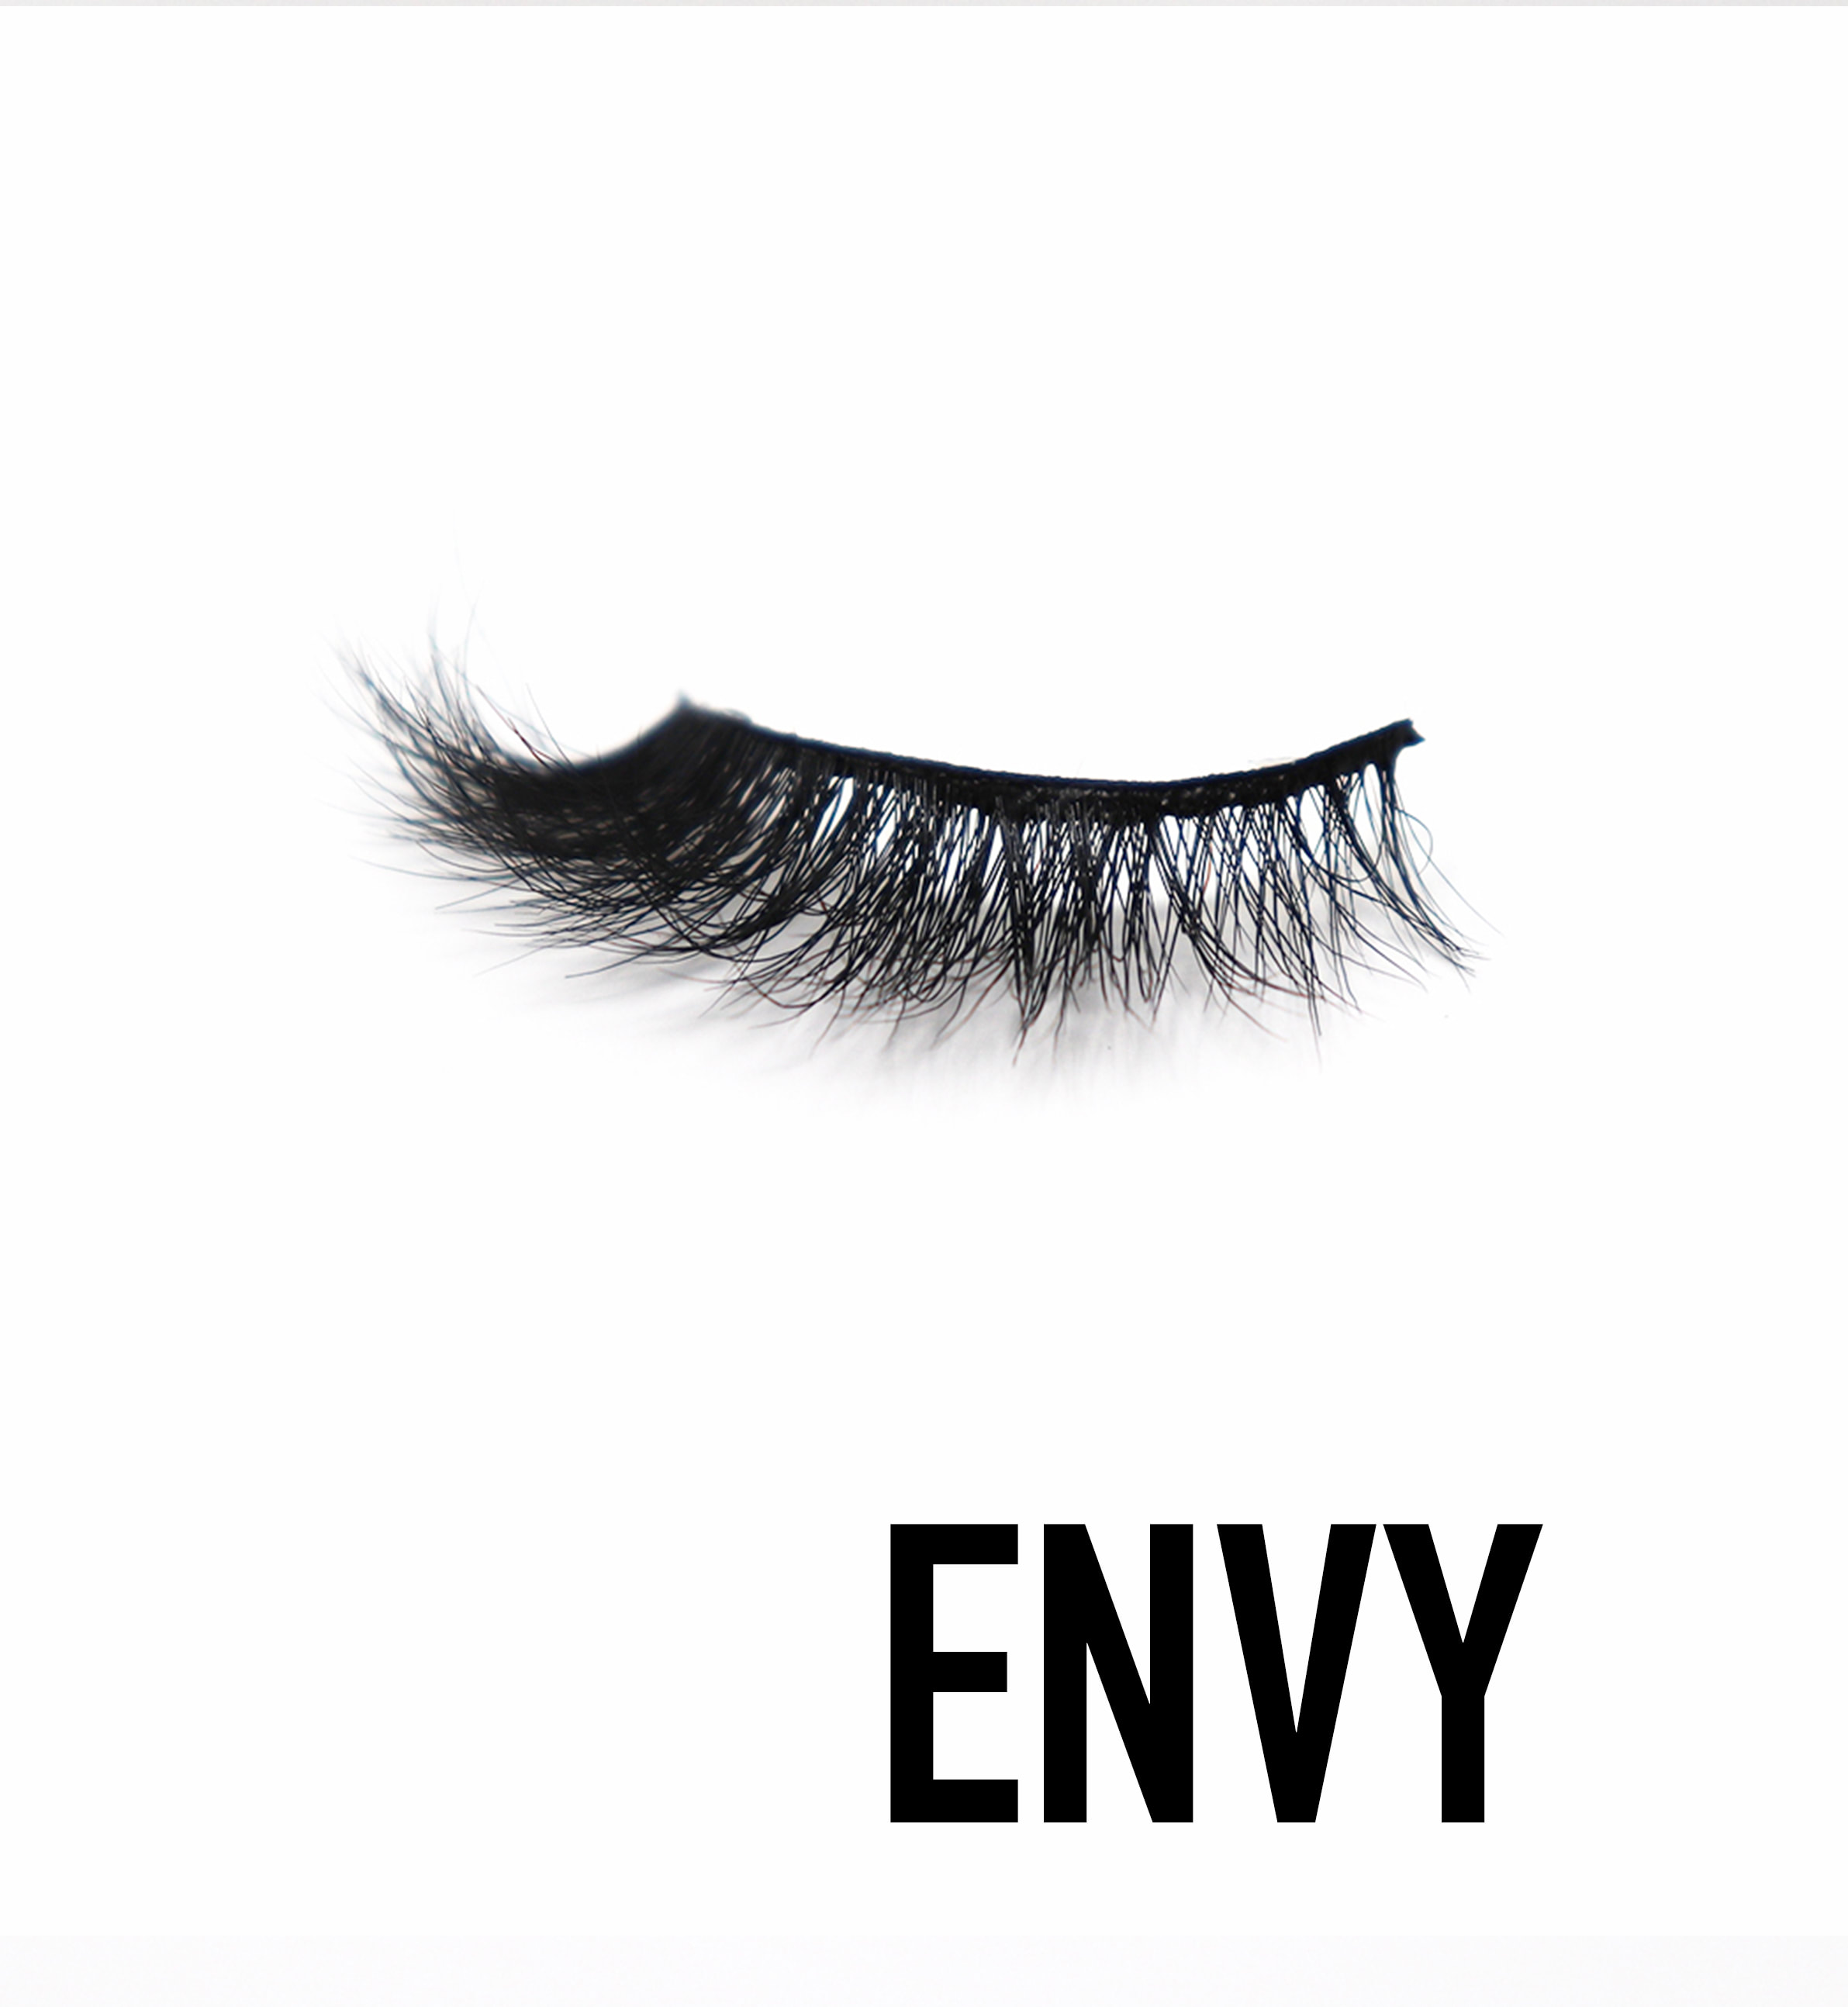 24 26 28 8a Luxury Lash Combo Pack